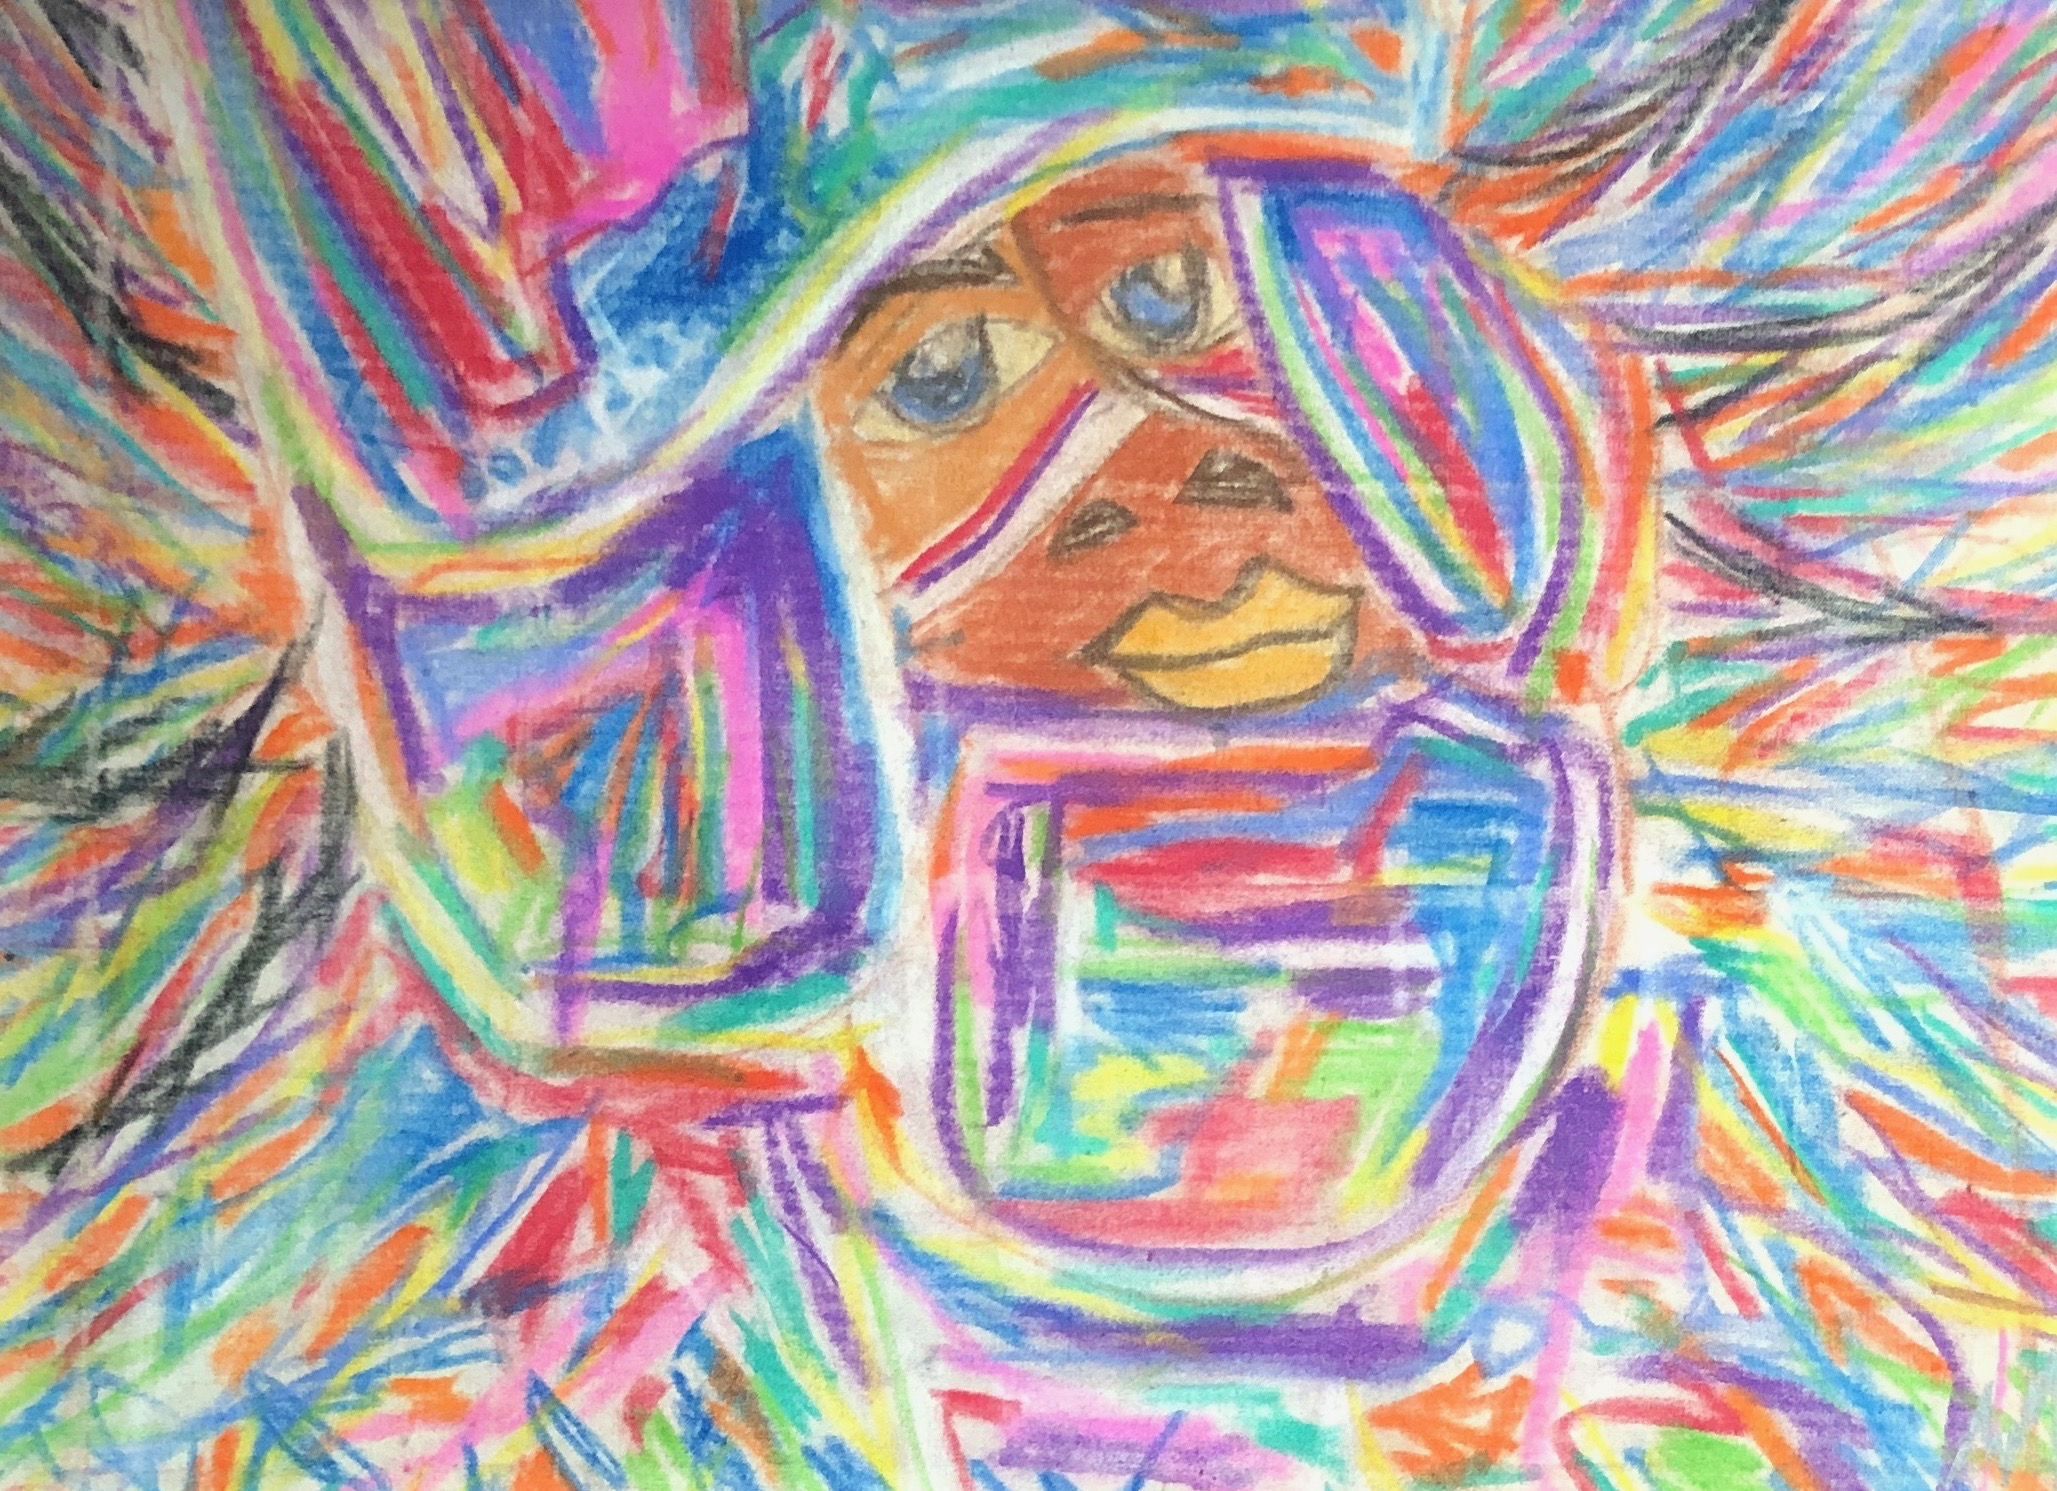 Heritage - Expressionist Mardi Gras Indian created with Oil Pastels on natural, un-primed canvas.